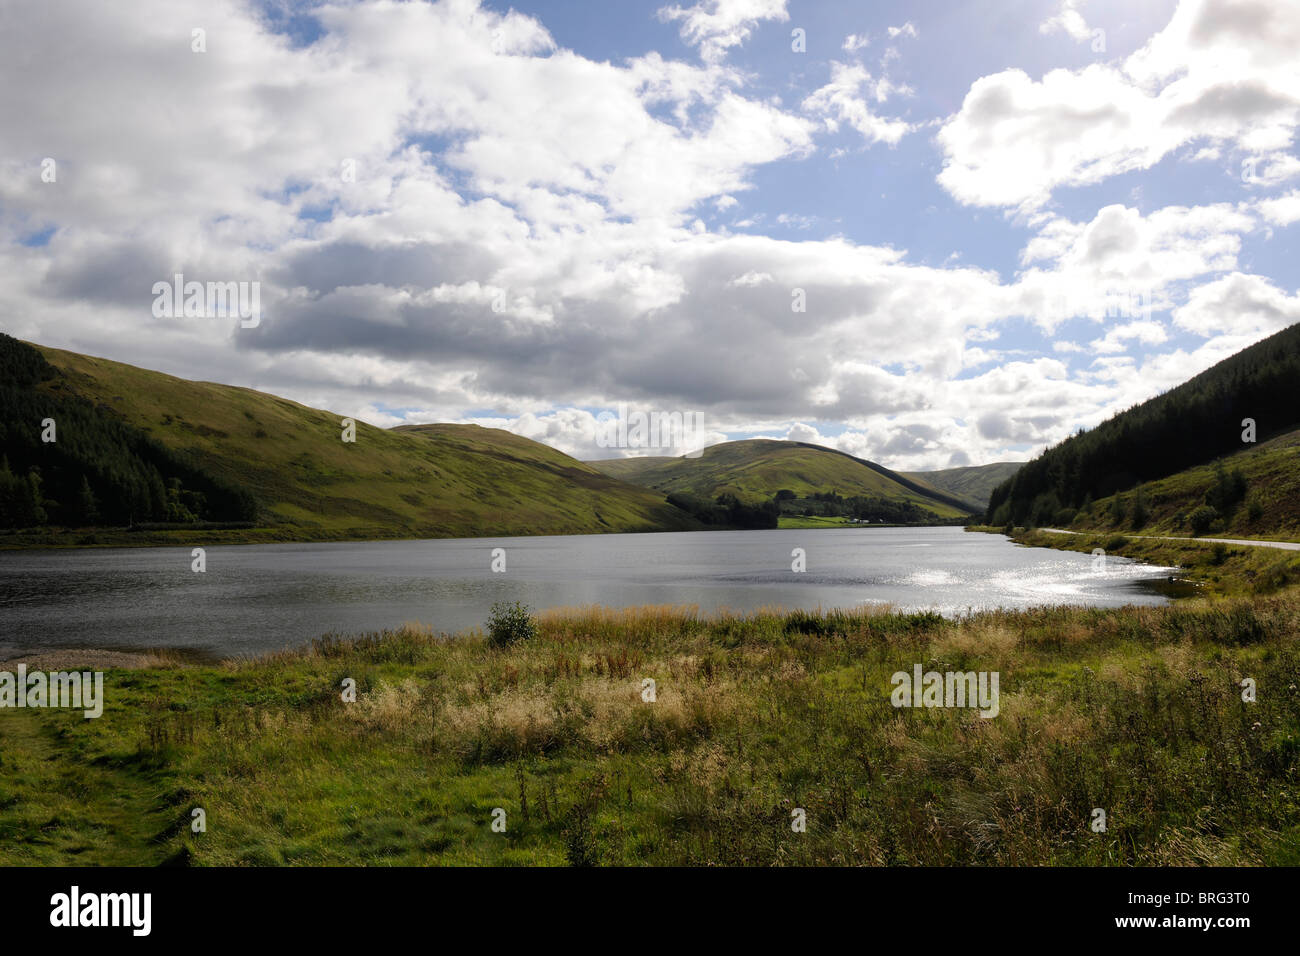 Loch of the Lowes, Scottish Borders Dumfriesshire-2 - Stock Image